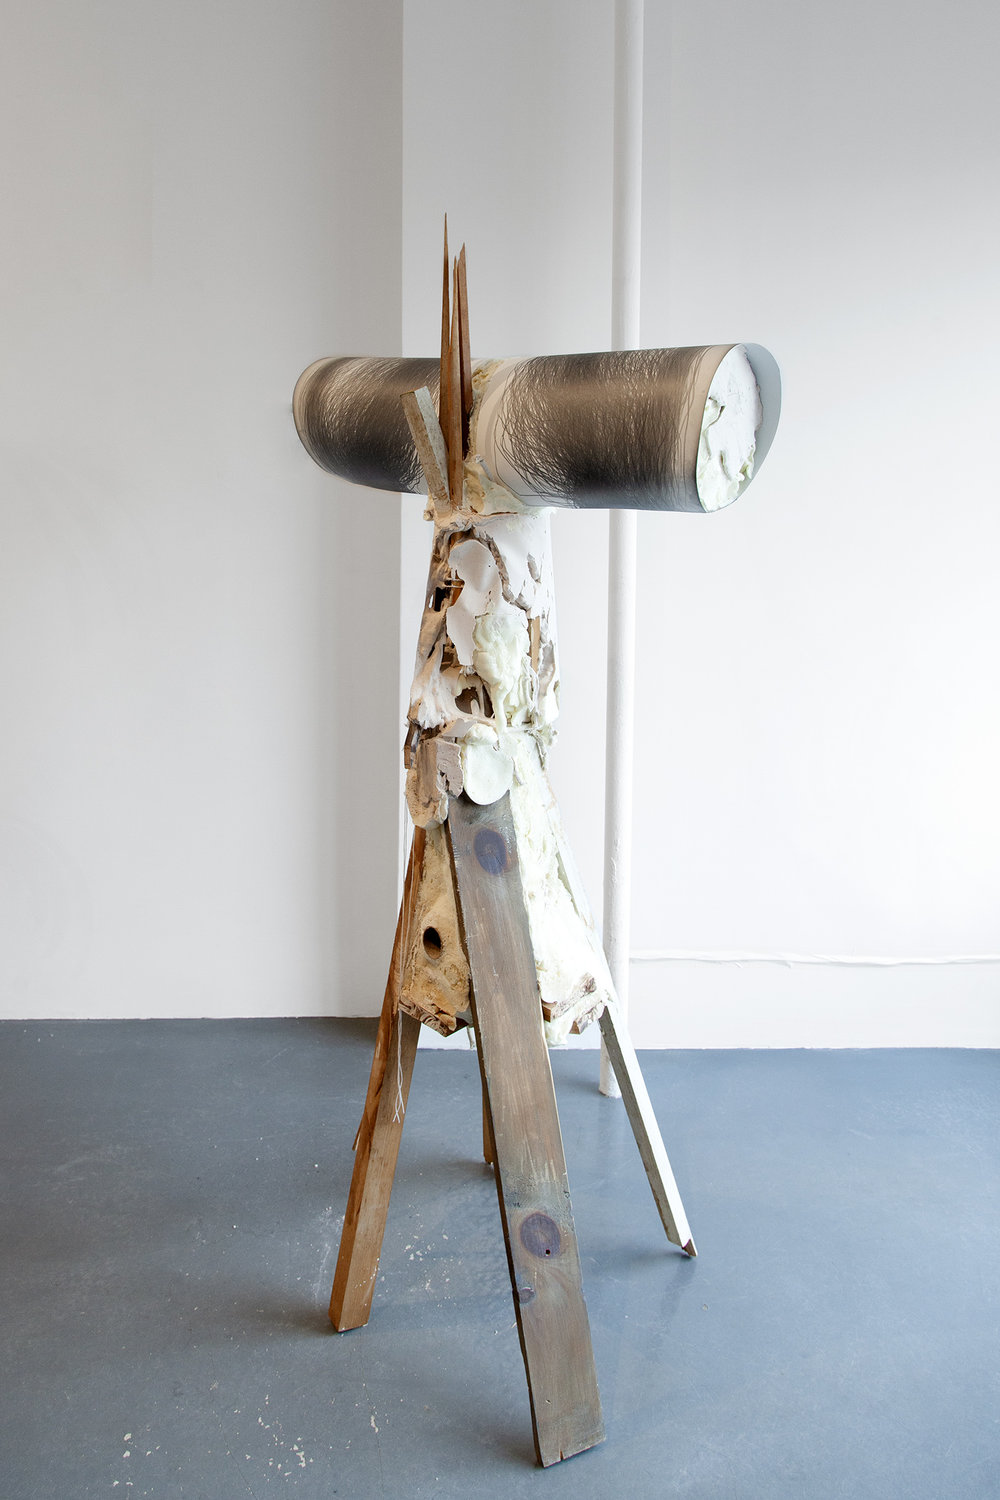 Supporting a continued gesture towards aligning our coexistence , 2019, Performance with graphite on paper and mixed media (reclaimed wood, rope, plaster, foam and aluminum), 59.5 x 28 x 18.5 in (150 x 71 x 46 cm)